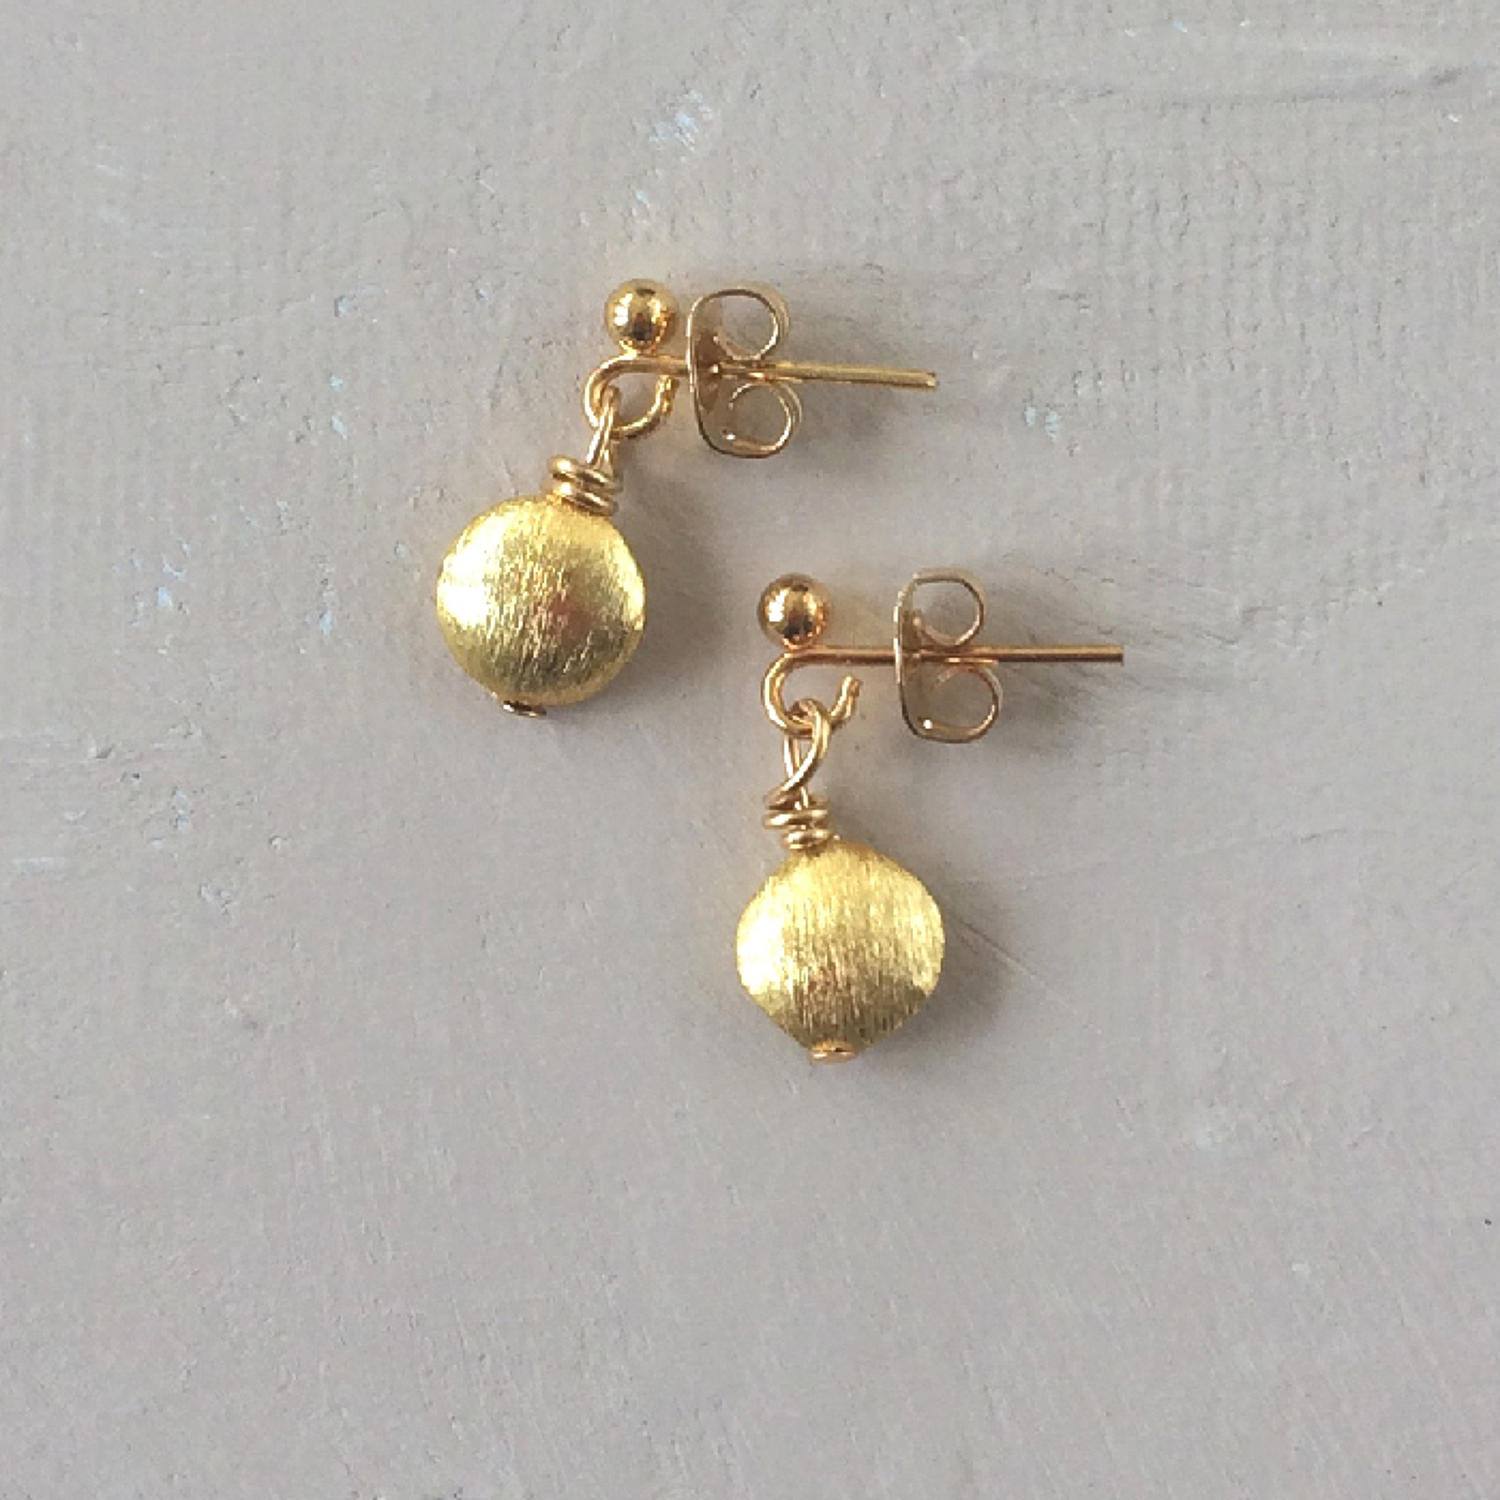 Nugget bud earrings